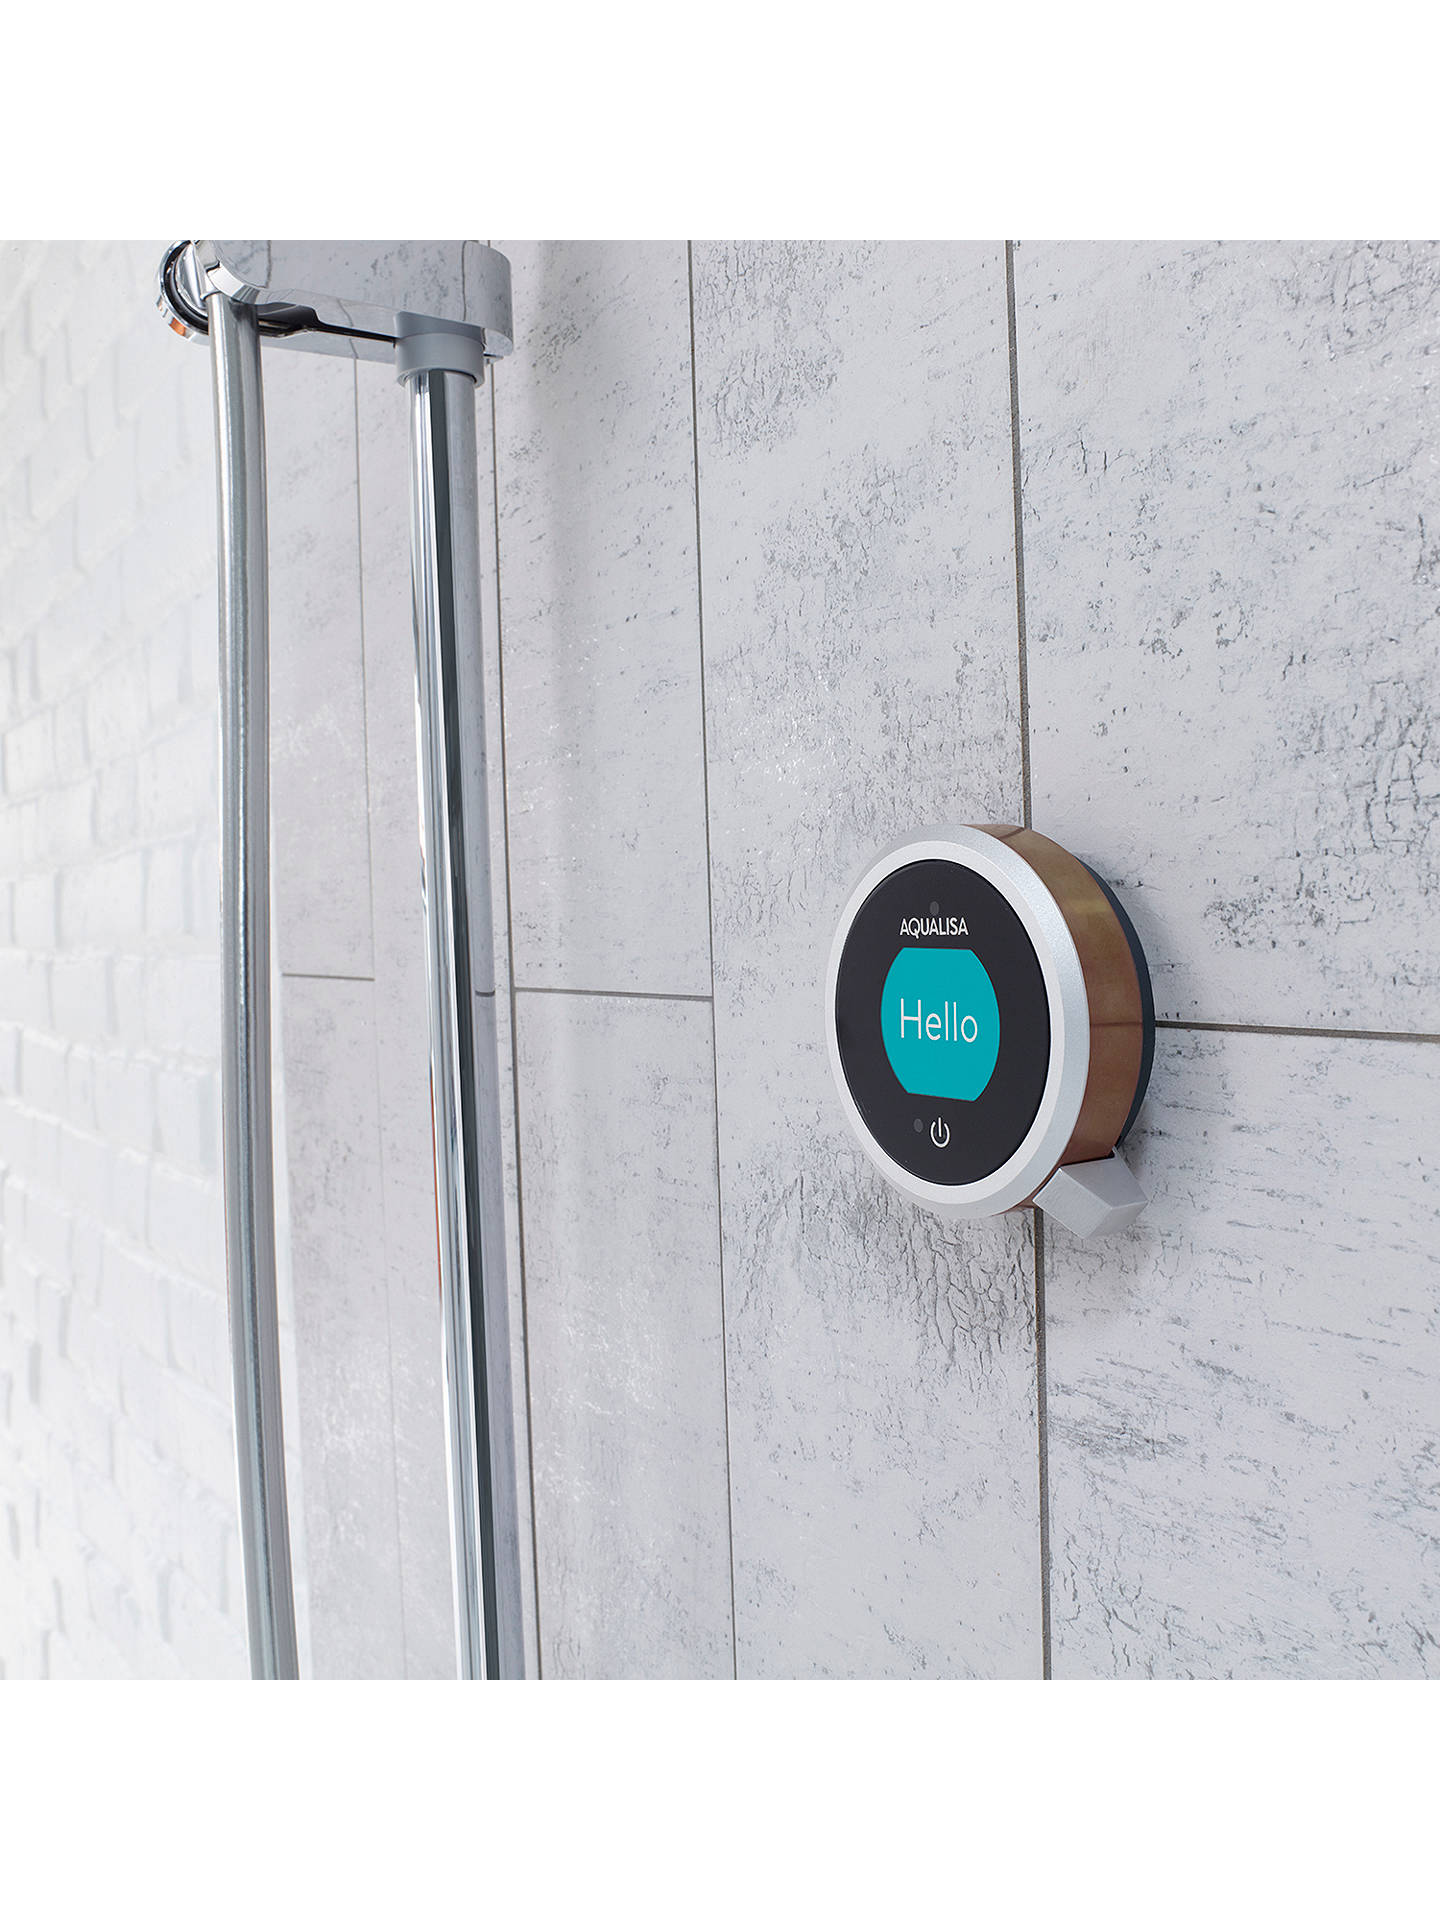 BuyAqualisa Q EDITION QES1 Smart Mixer and 130mm Vita Shower Handset, Silver Online at johnlewis.com